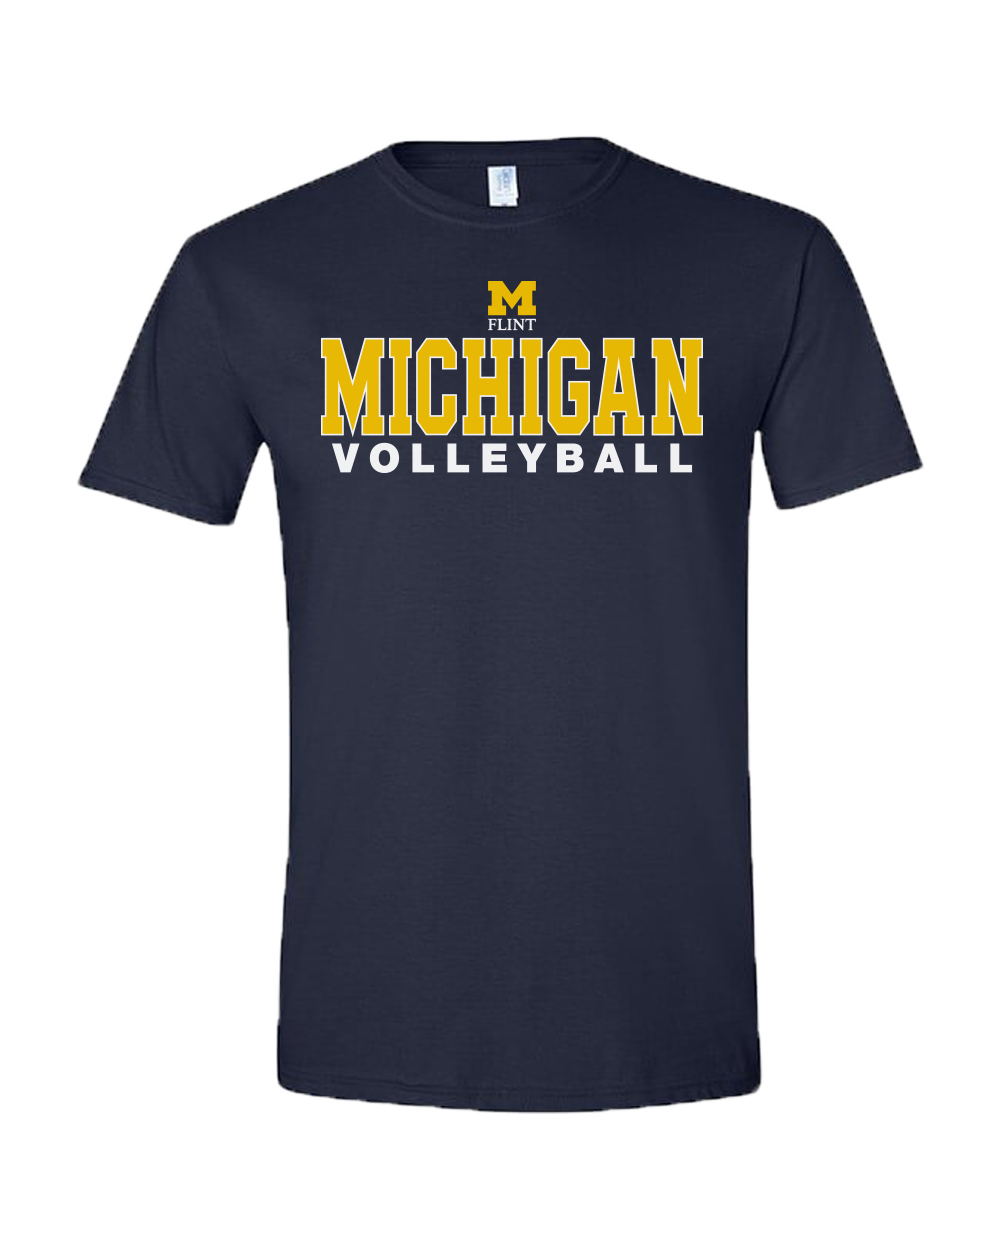 UNISEX Michigan Volleyball Design Navy Short Sleeve Tee